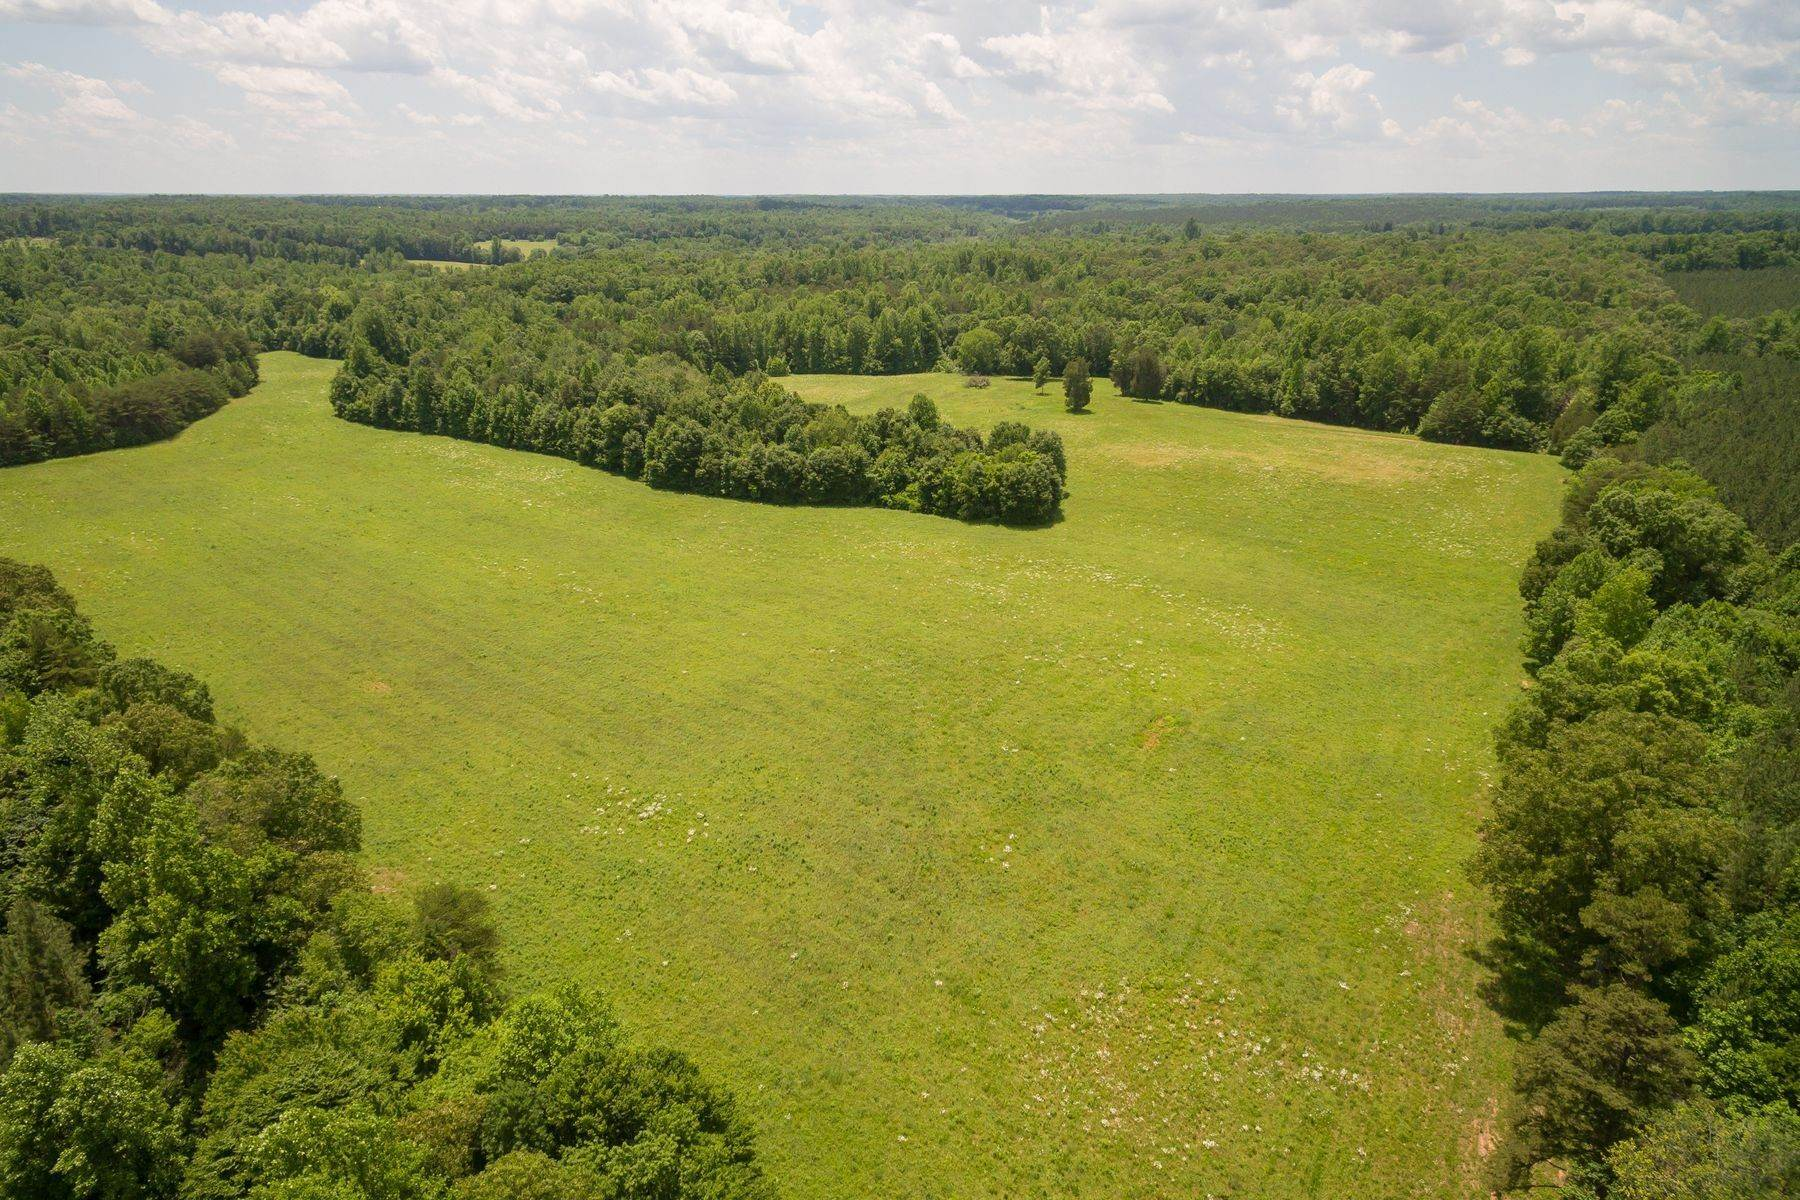 48. Property for Sale at Gardner Farm 792 E Old Mountain Rd Mineral, Virginia 23117 United States